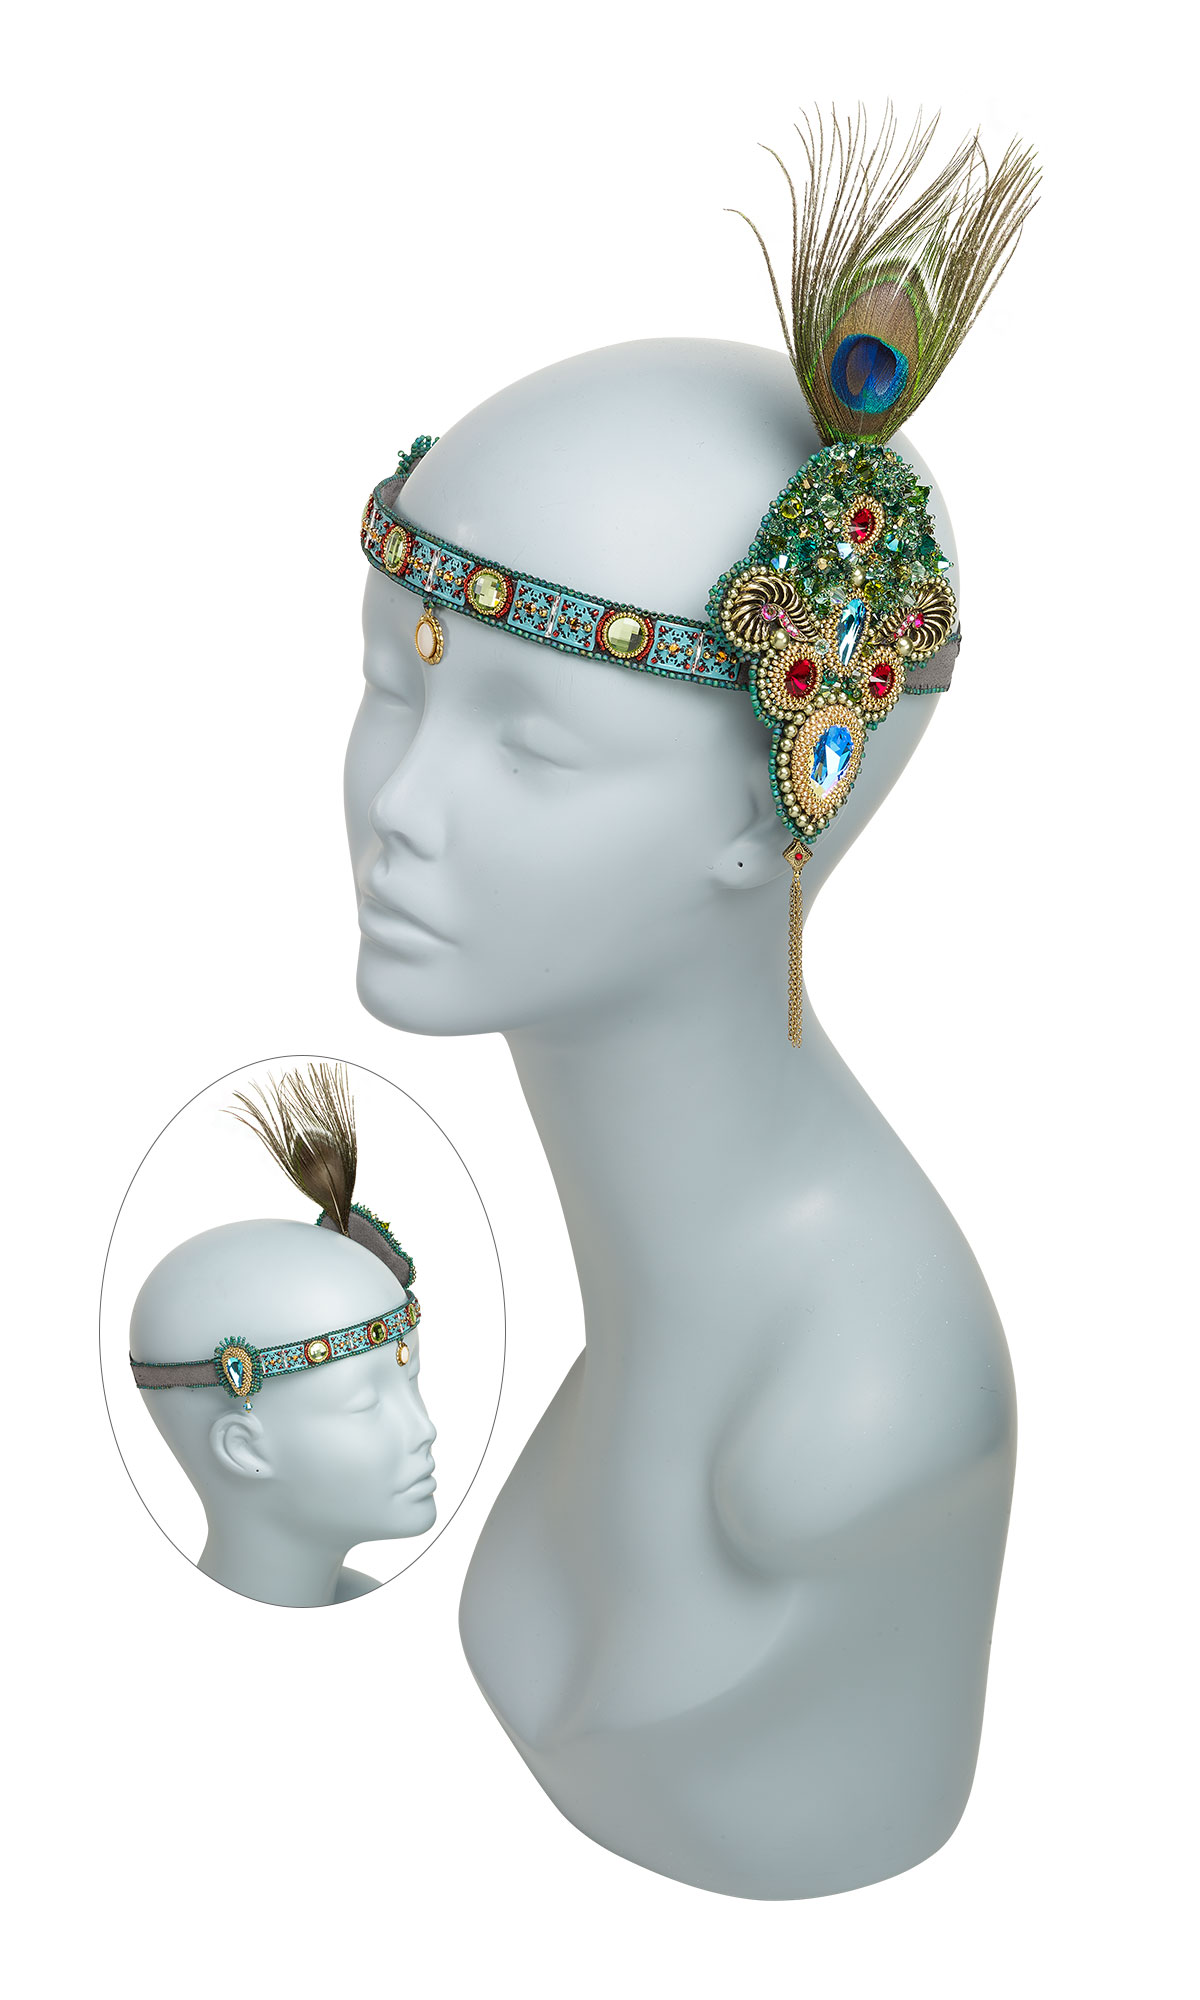 Jewelry Design - Headdress with Swarovski® Crystals, Seed Beads and ...